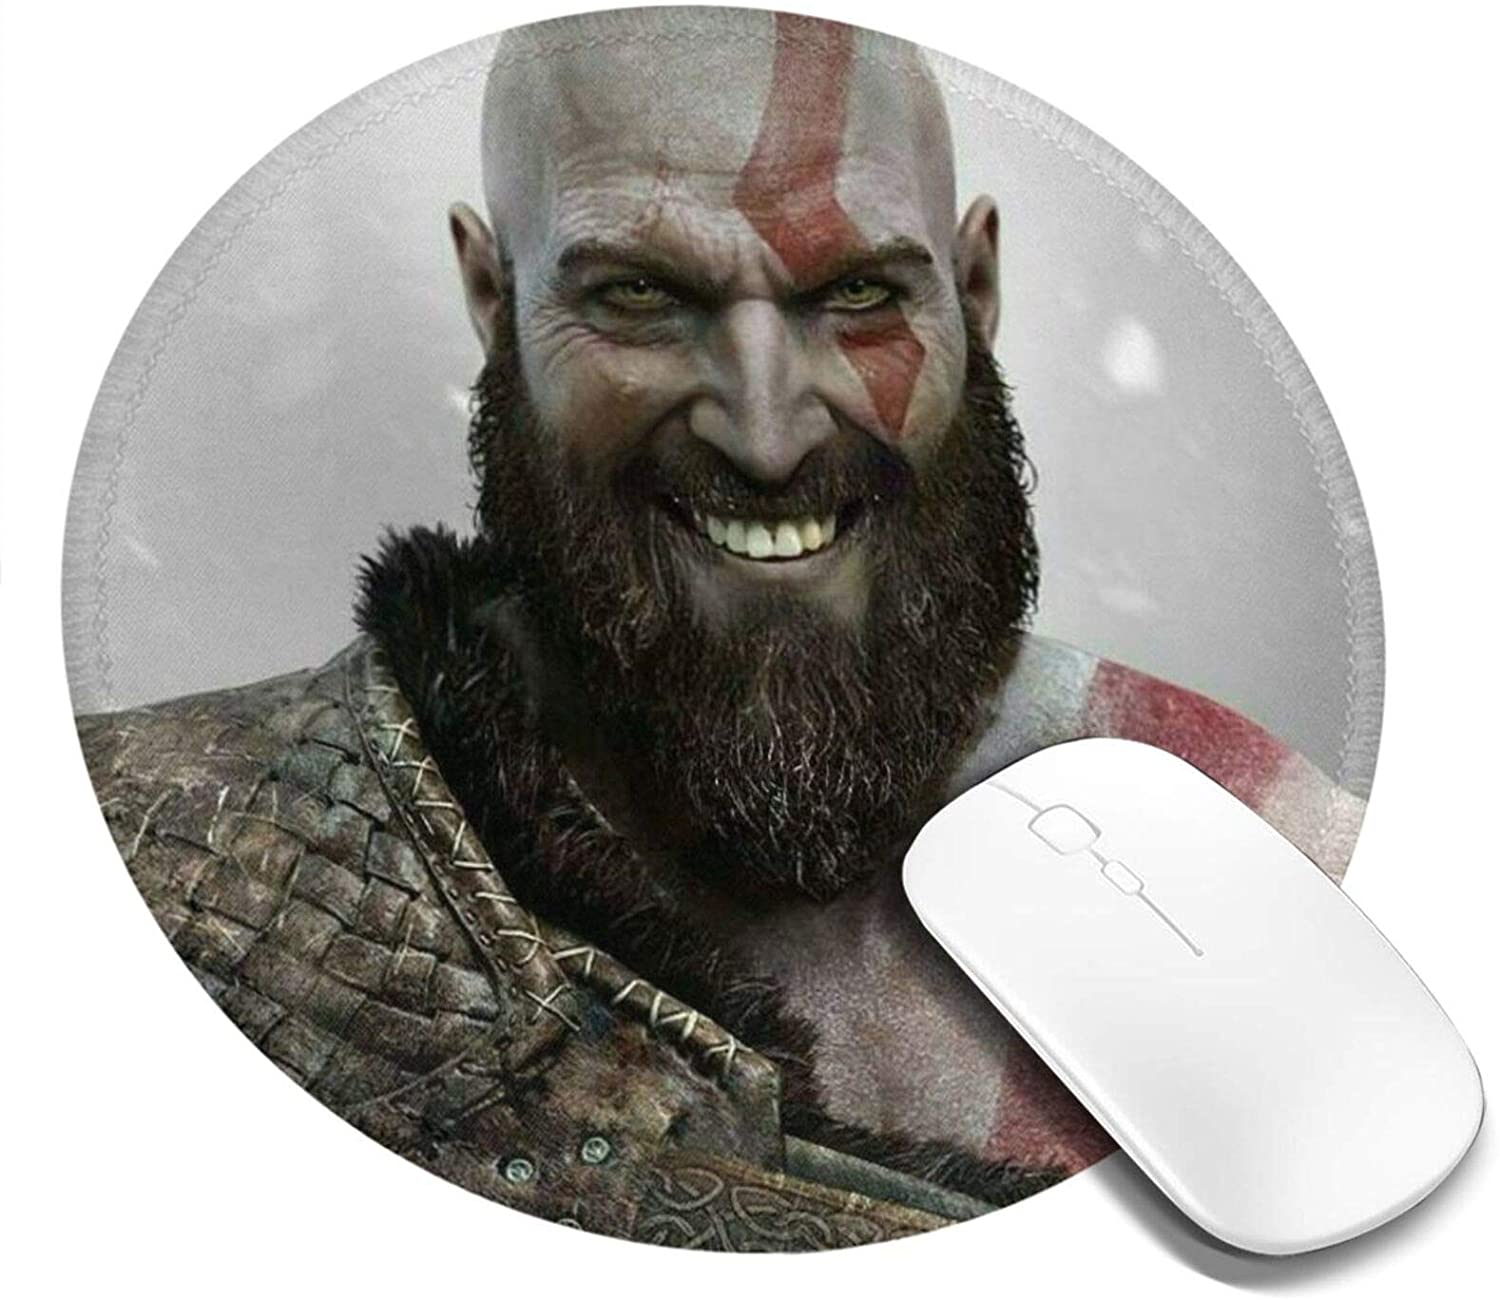 God of War Customized Designs Non-Slip Rubber Base Gaming Mouse Pads for Mac,7.9x7.9 in, Pc, Computers. Ideal for Working Or Game